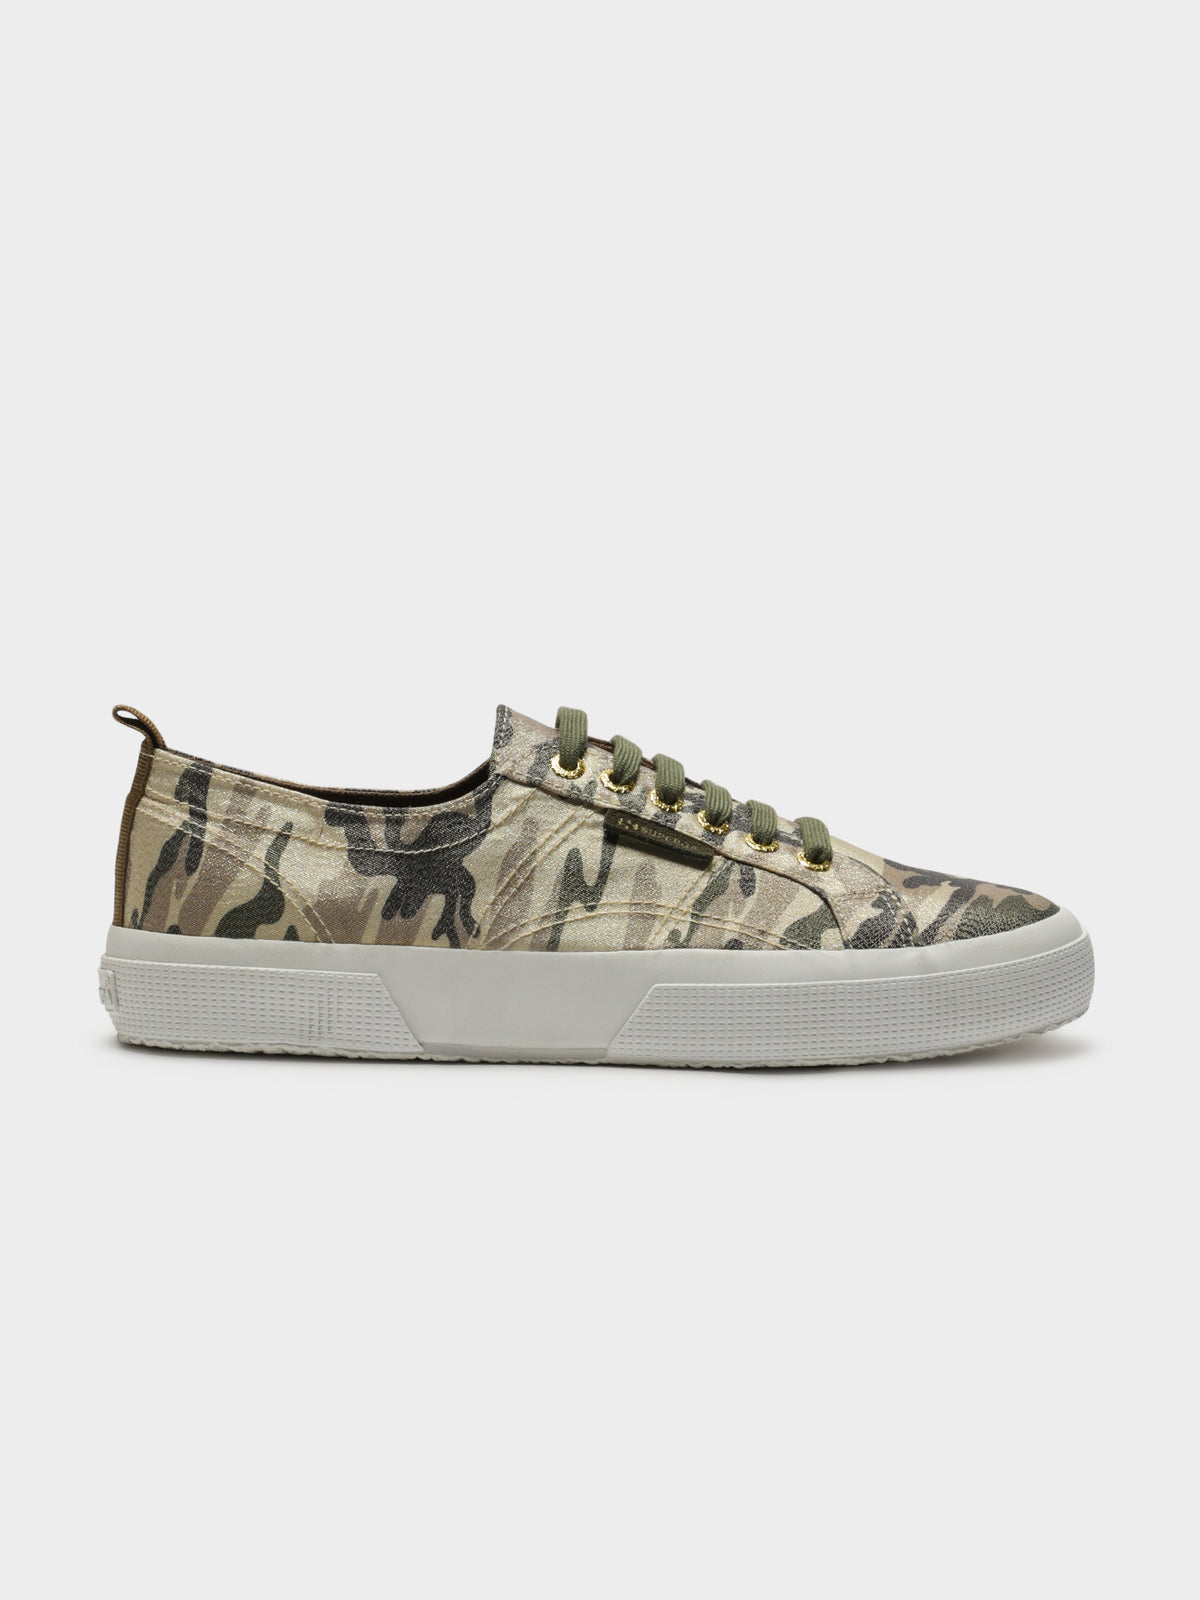 Womens 2750 Lamecamow Sneakers in Gold Camouflage